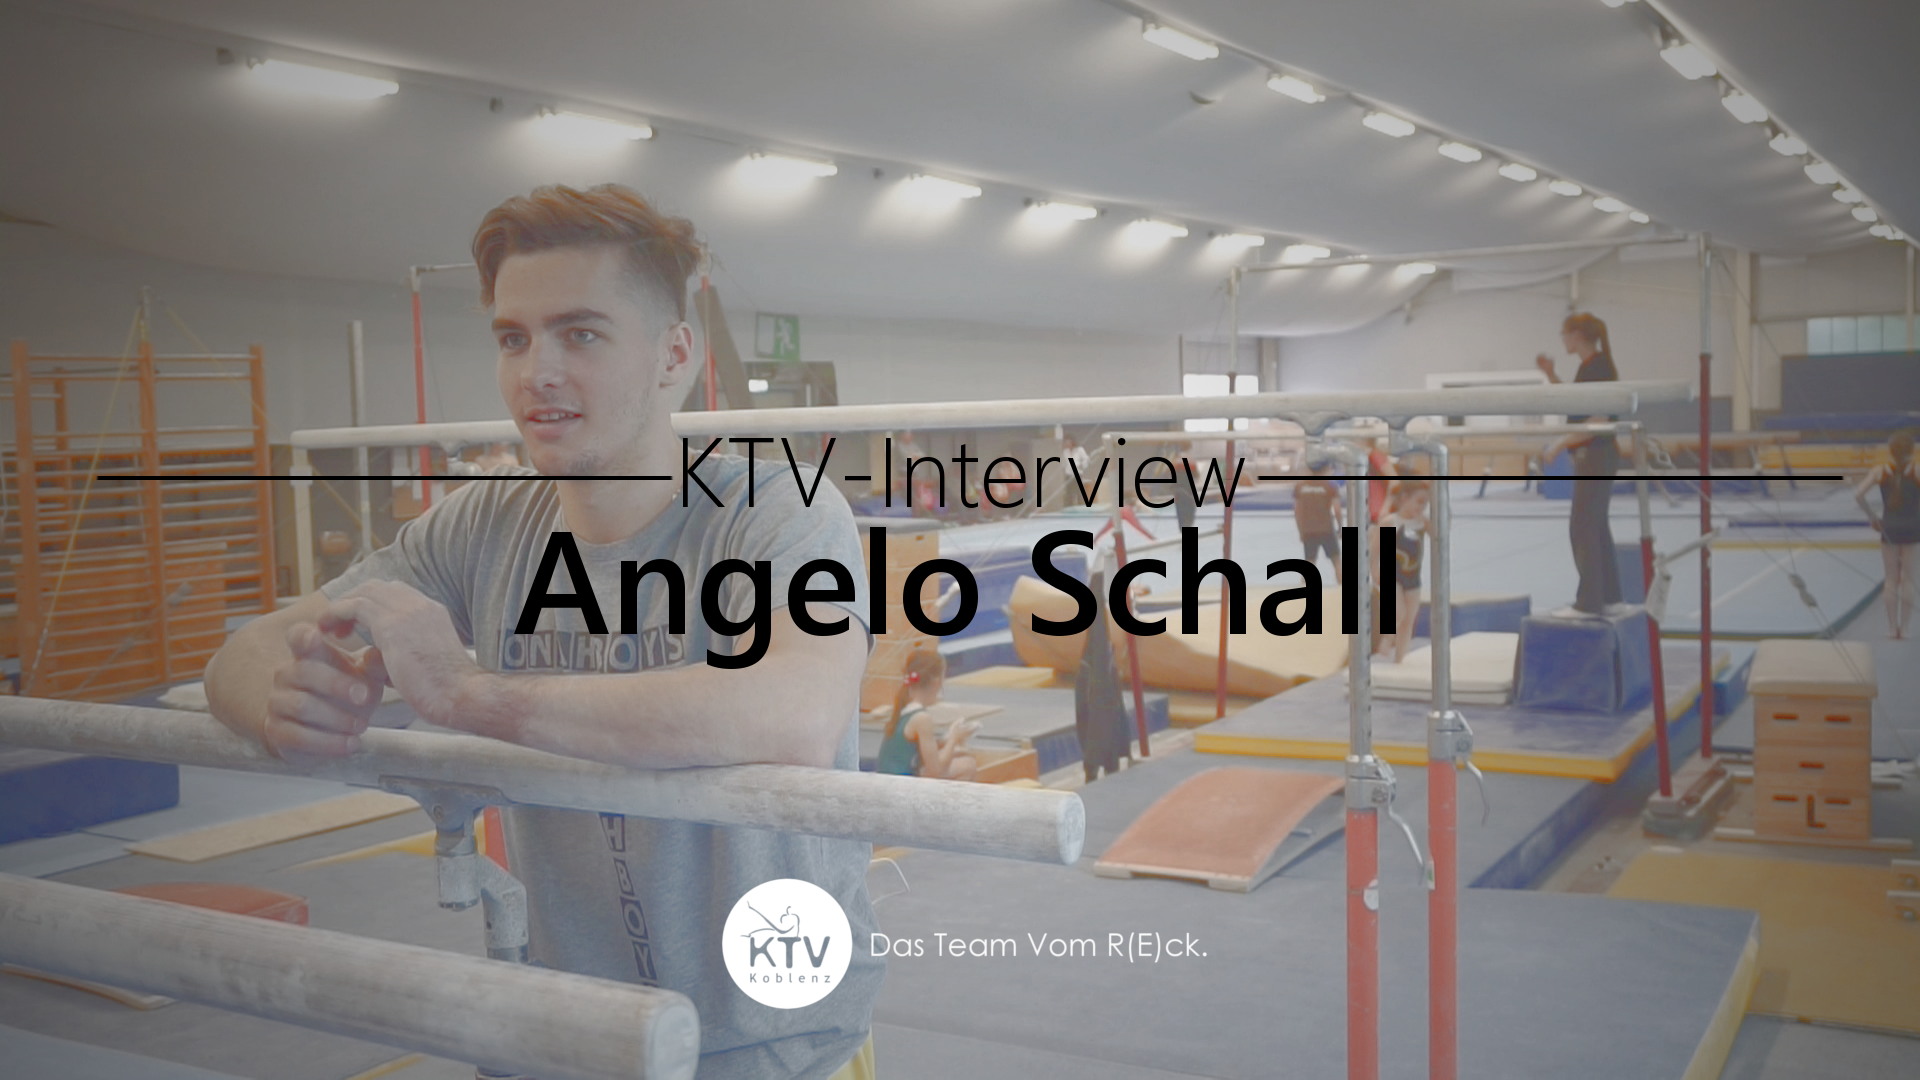 KTV-Interview | Angelo Schall